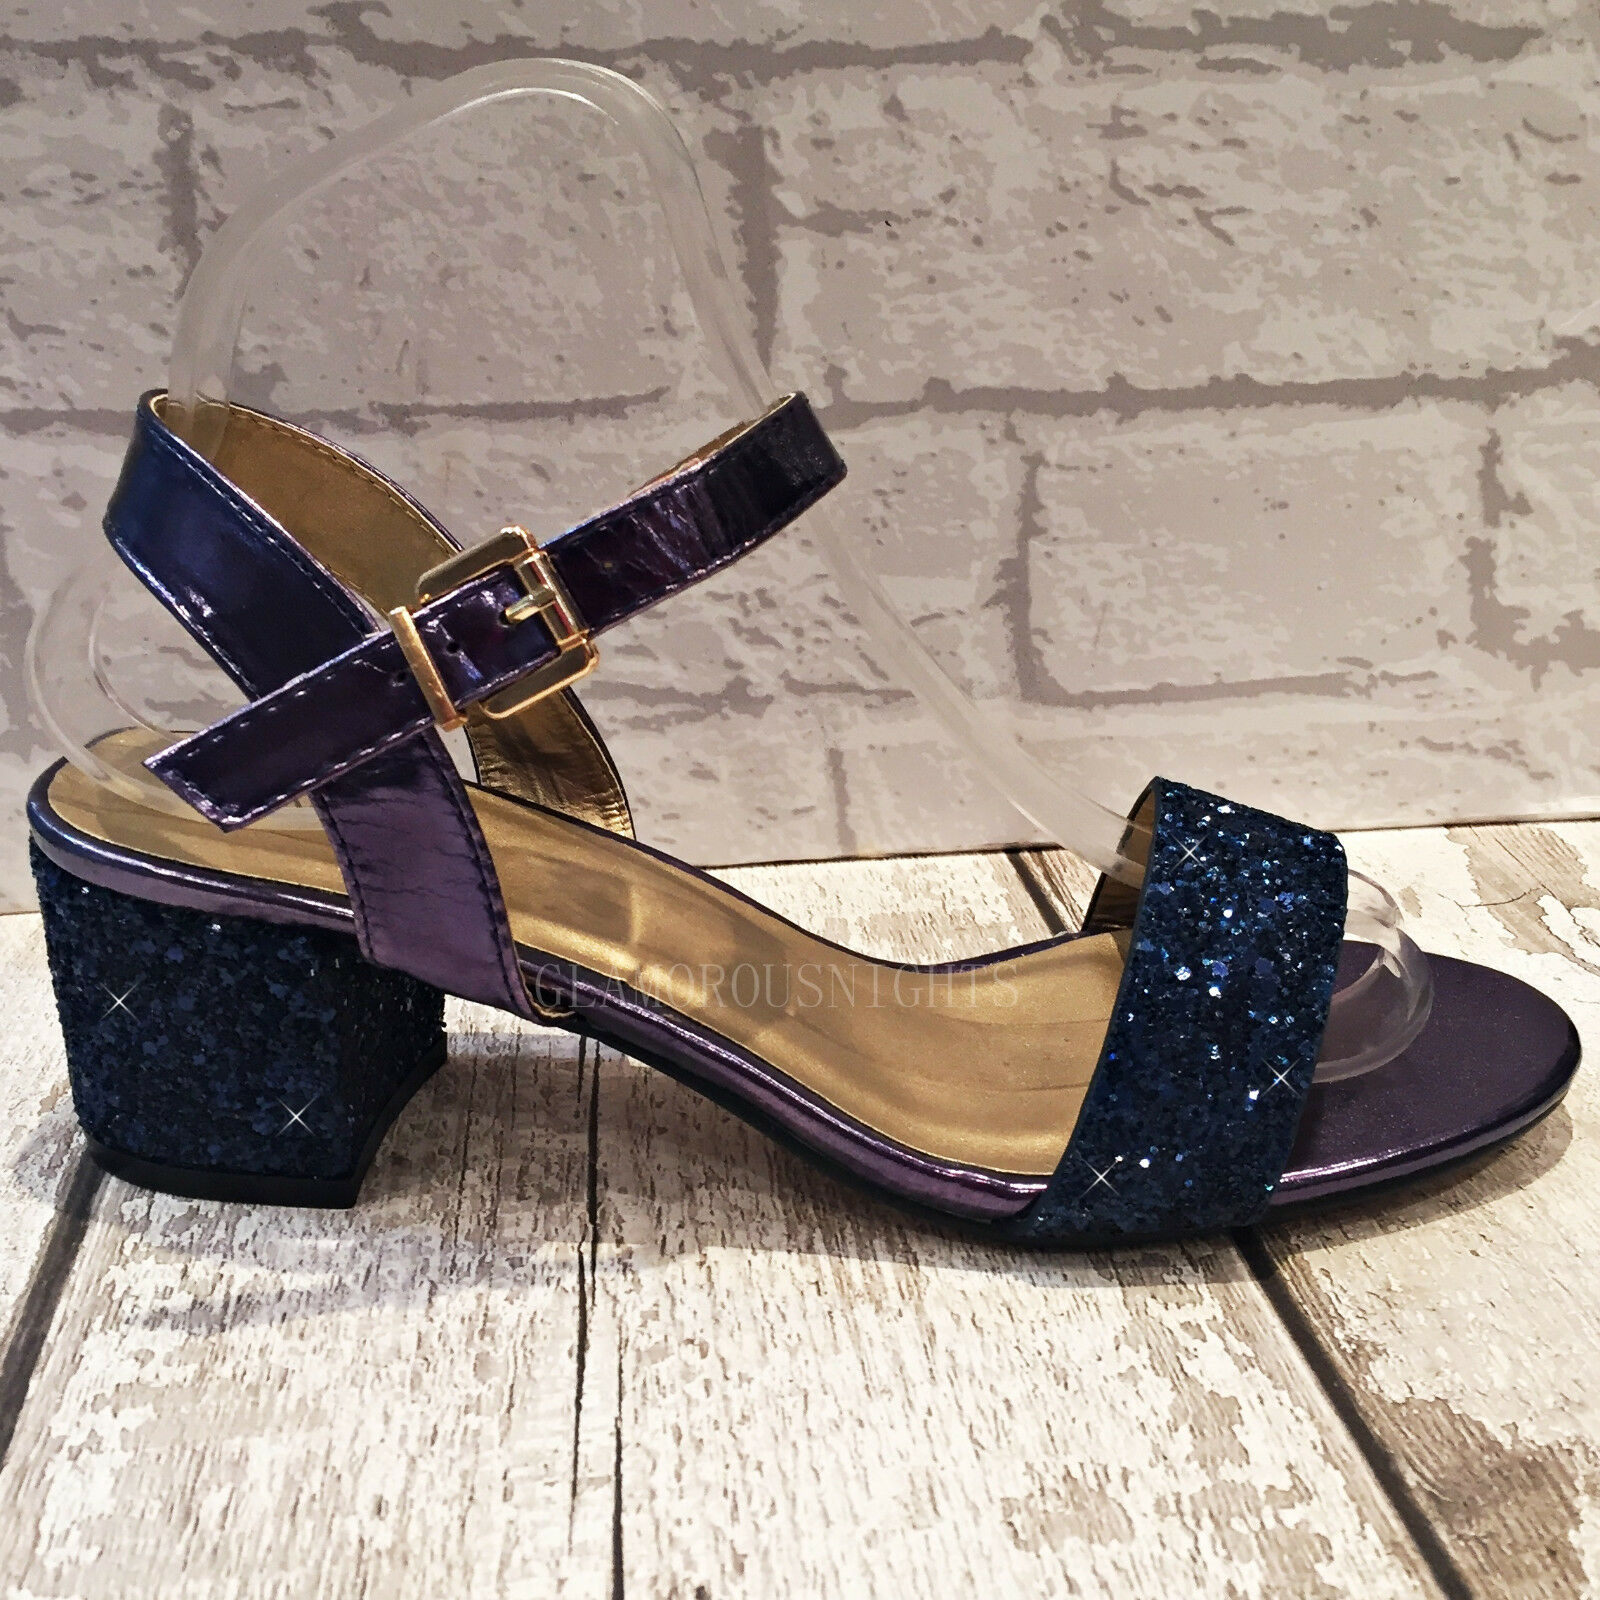 d8005eee1bc Details about Ladies Navy Blue Sparkly Glitter Block Heel Ankle Strap Peep  Toe Evening Sandals